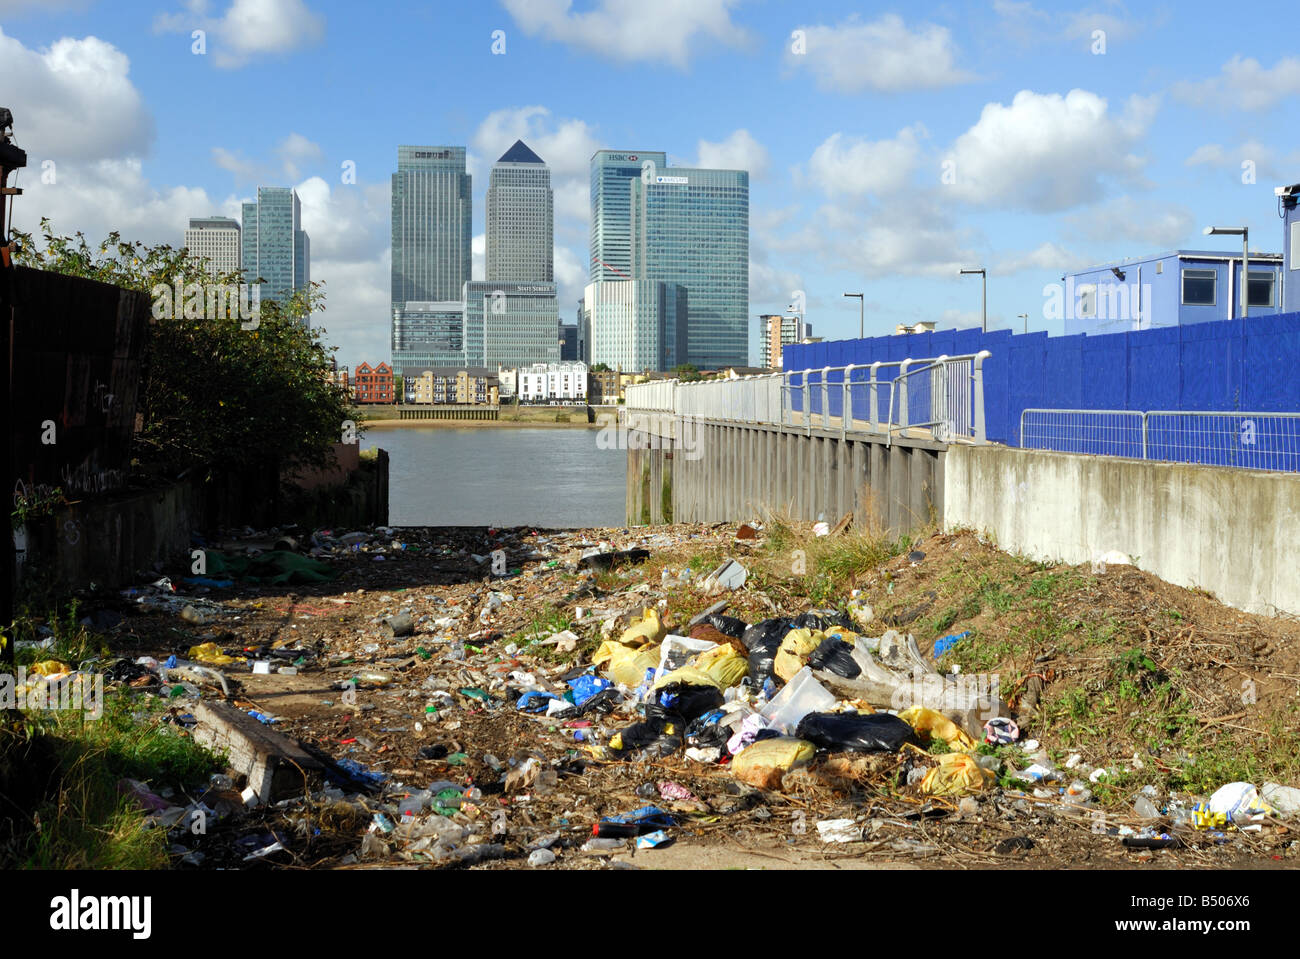 River Thames pollution with Canary Wharf in background London UK - Stock Image